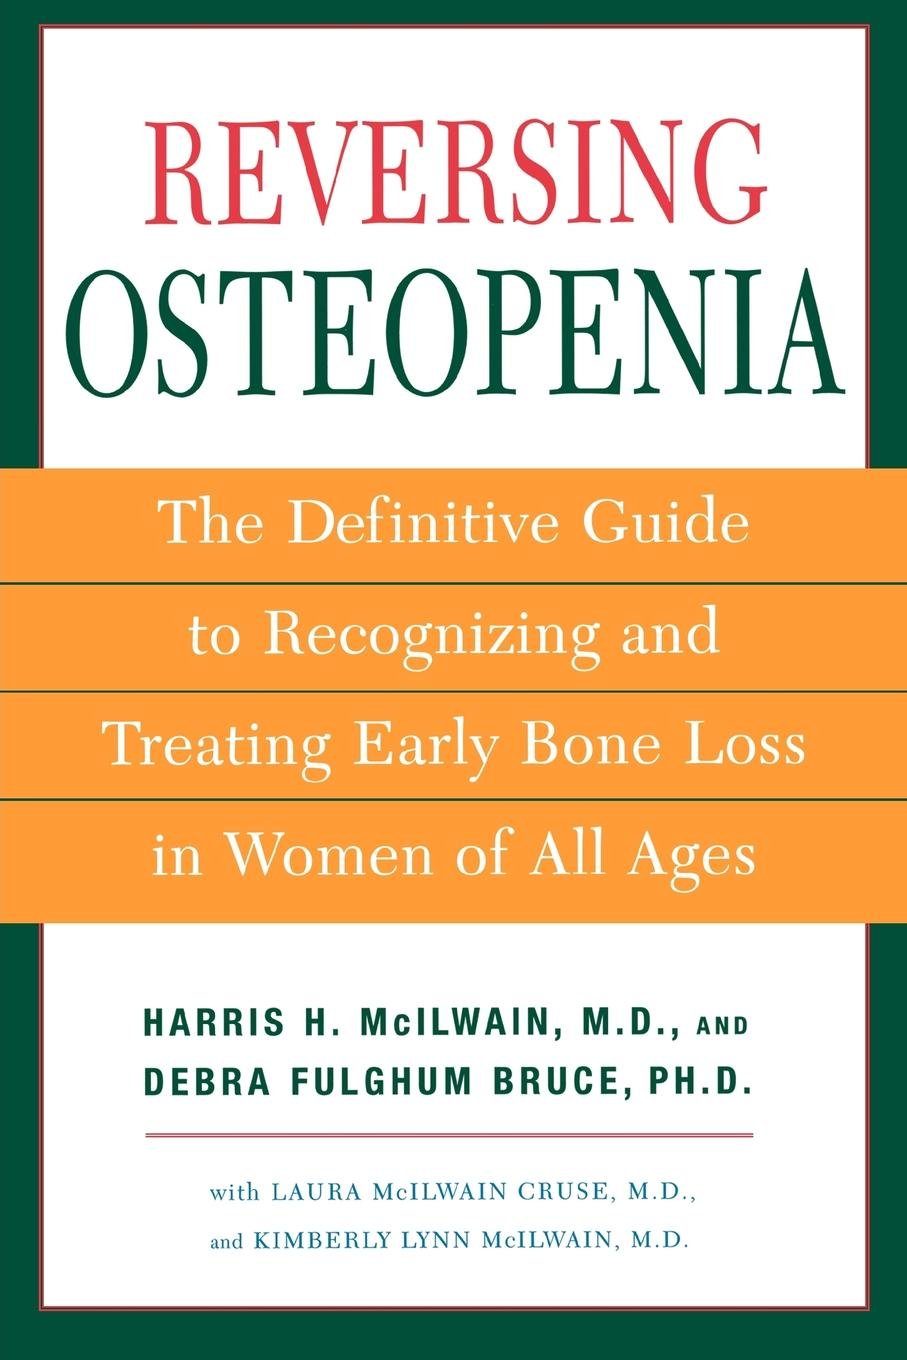 Reversing Osteopenia: The Definitive Guide to Recognizing and Treating  Early Bone Loss in Women of All Ages: Harris McIlwain, Debra Fulghum Bruce,  ...